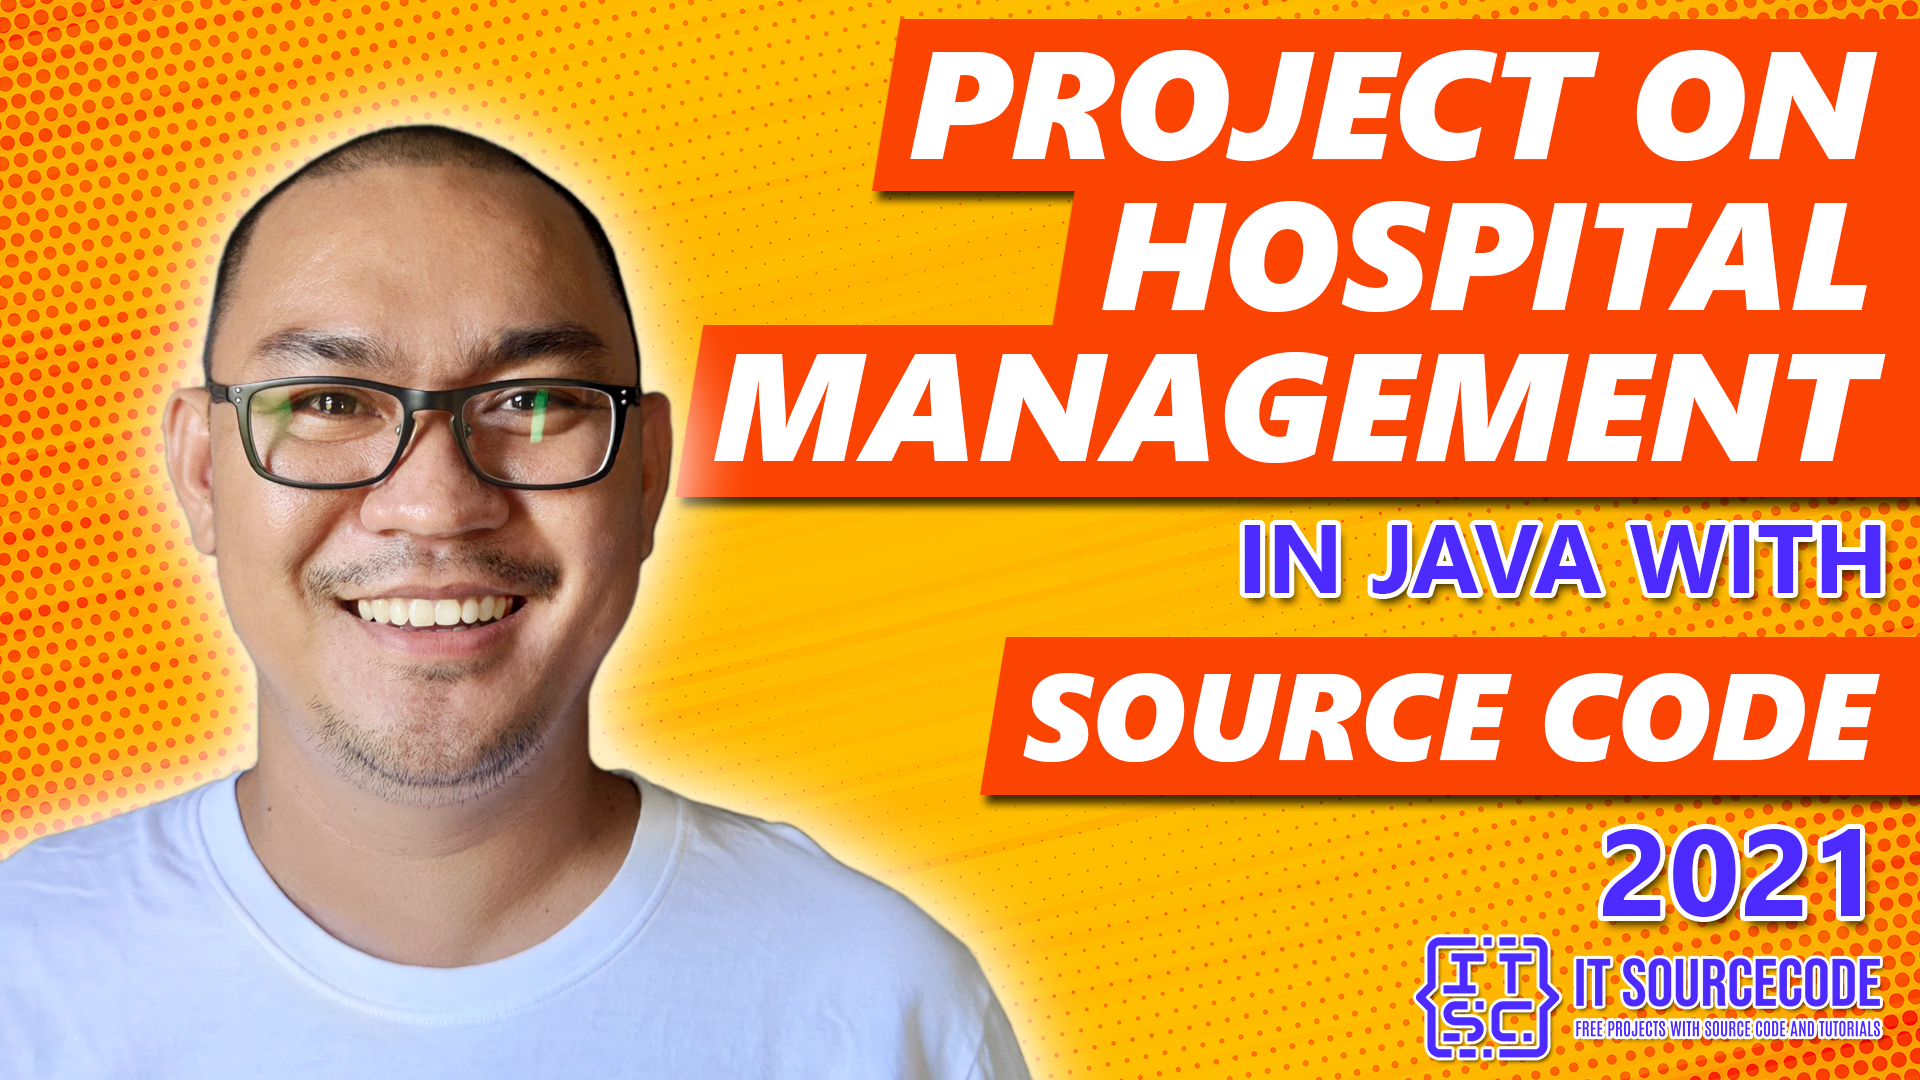 Project on Hospital Management in Java